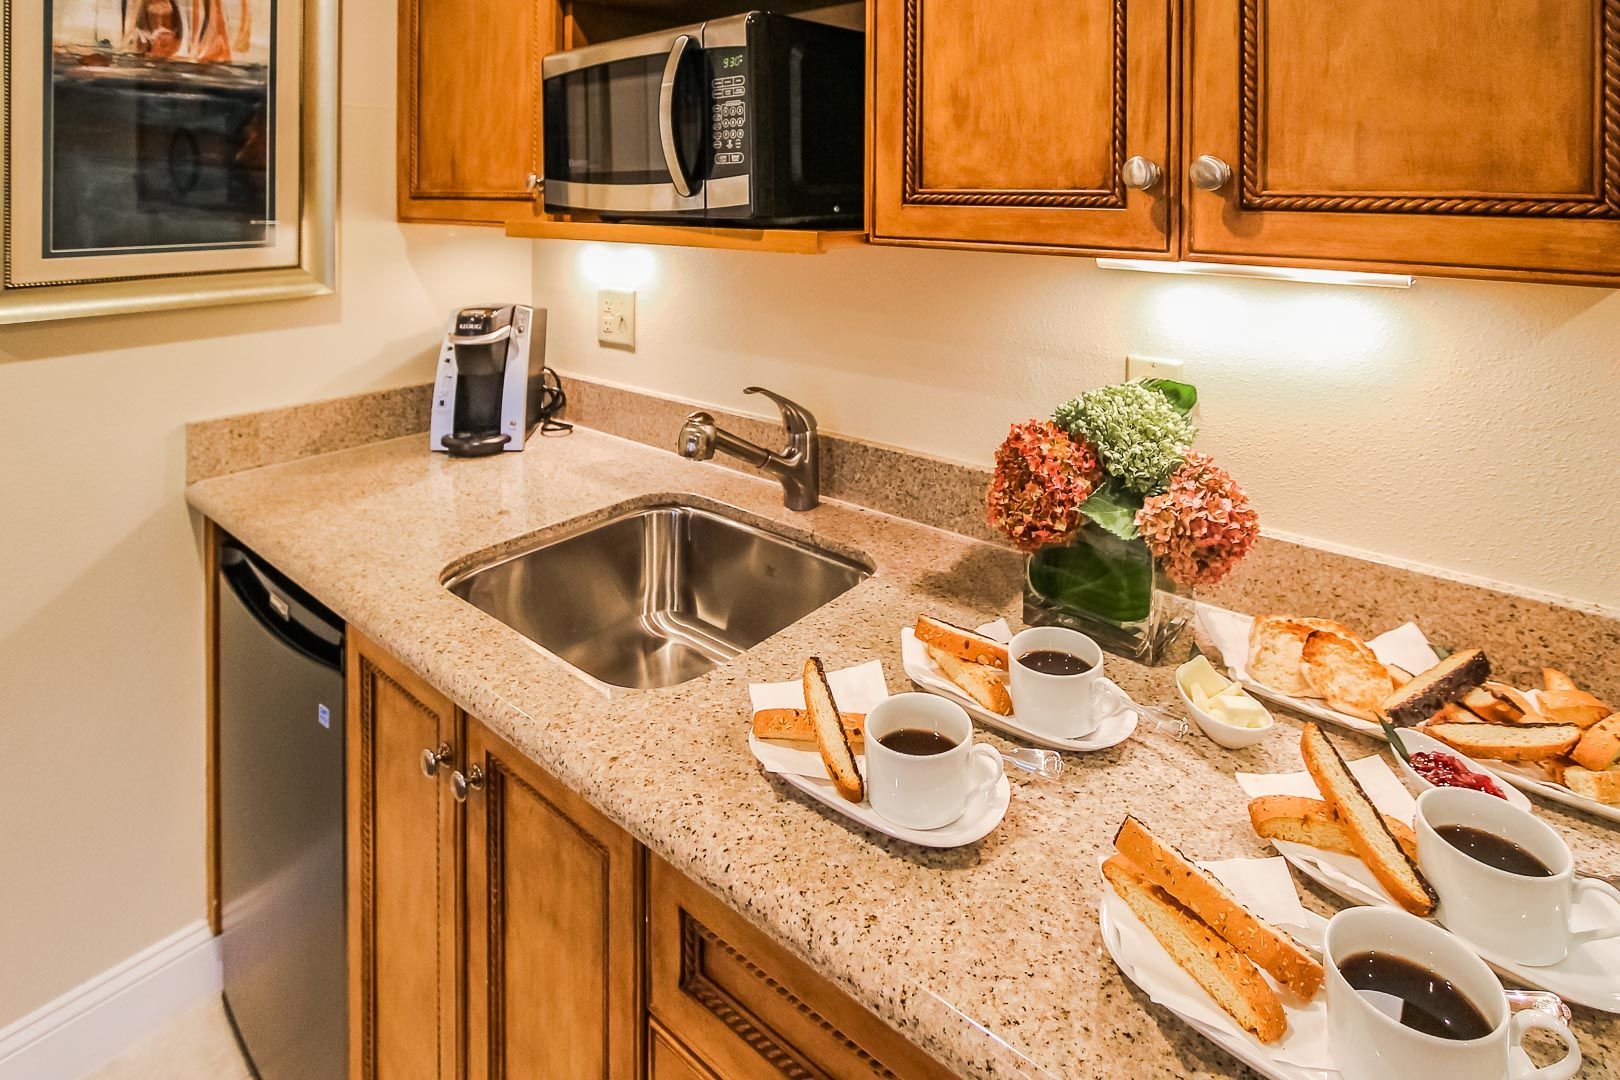 Cove at Yarmouth unit amenities